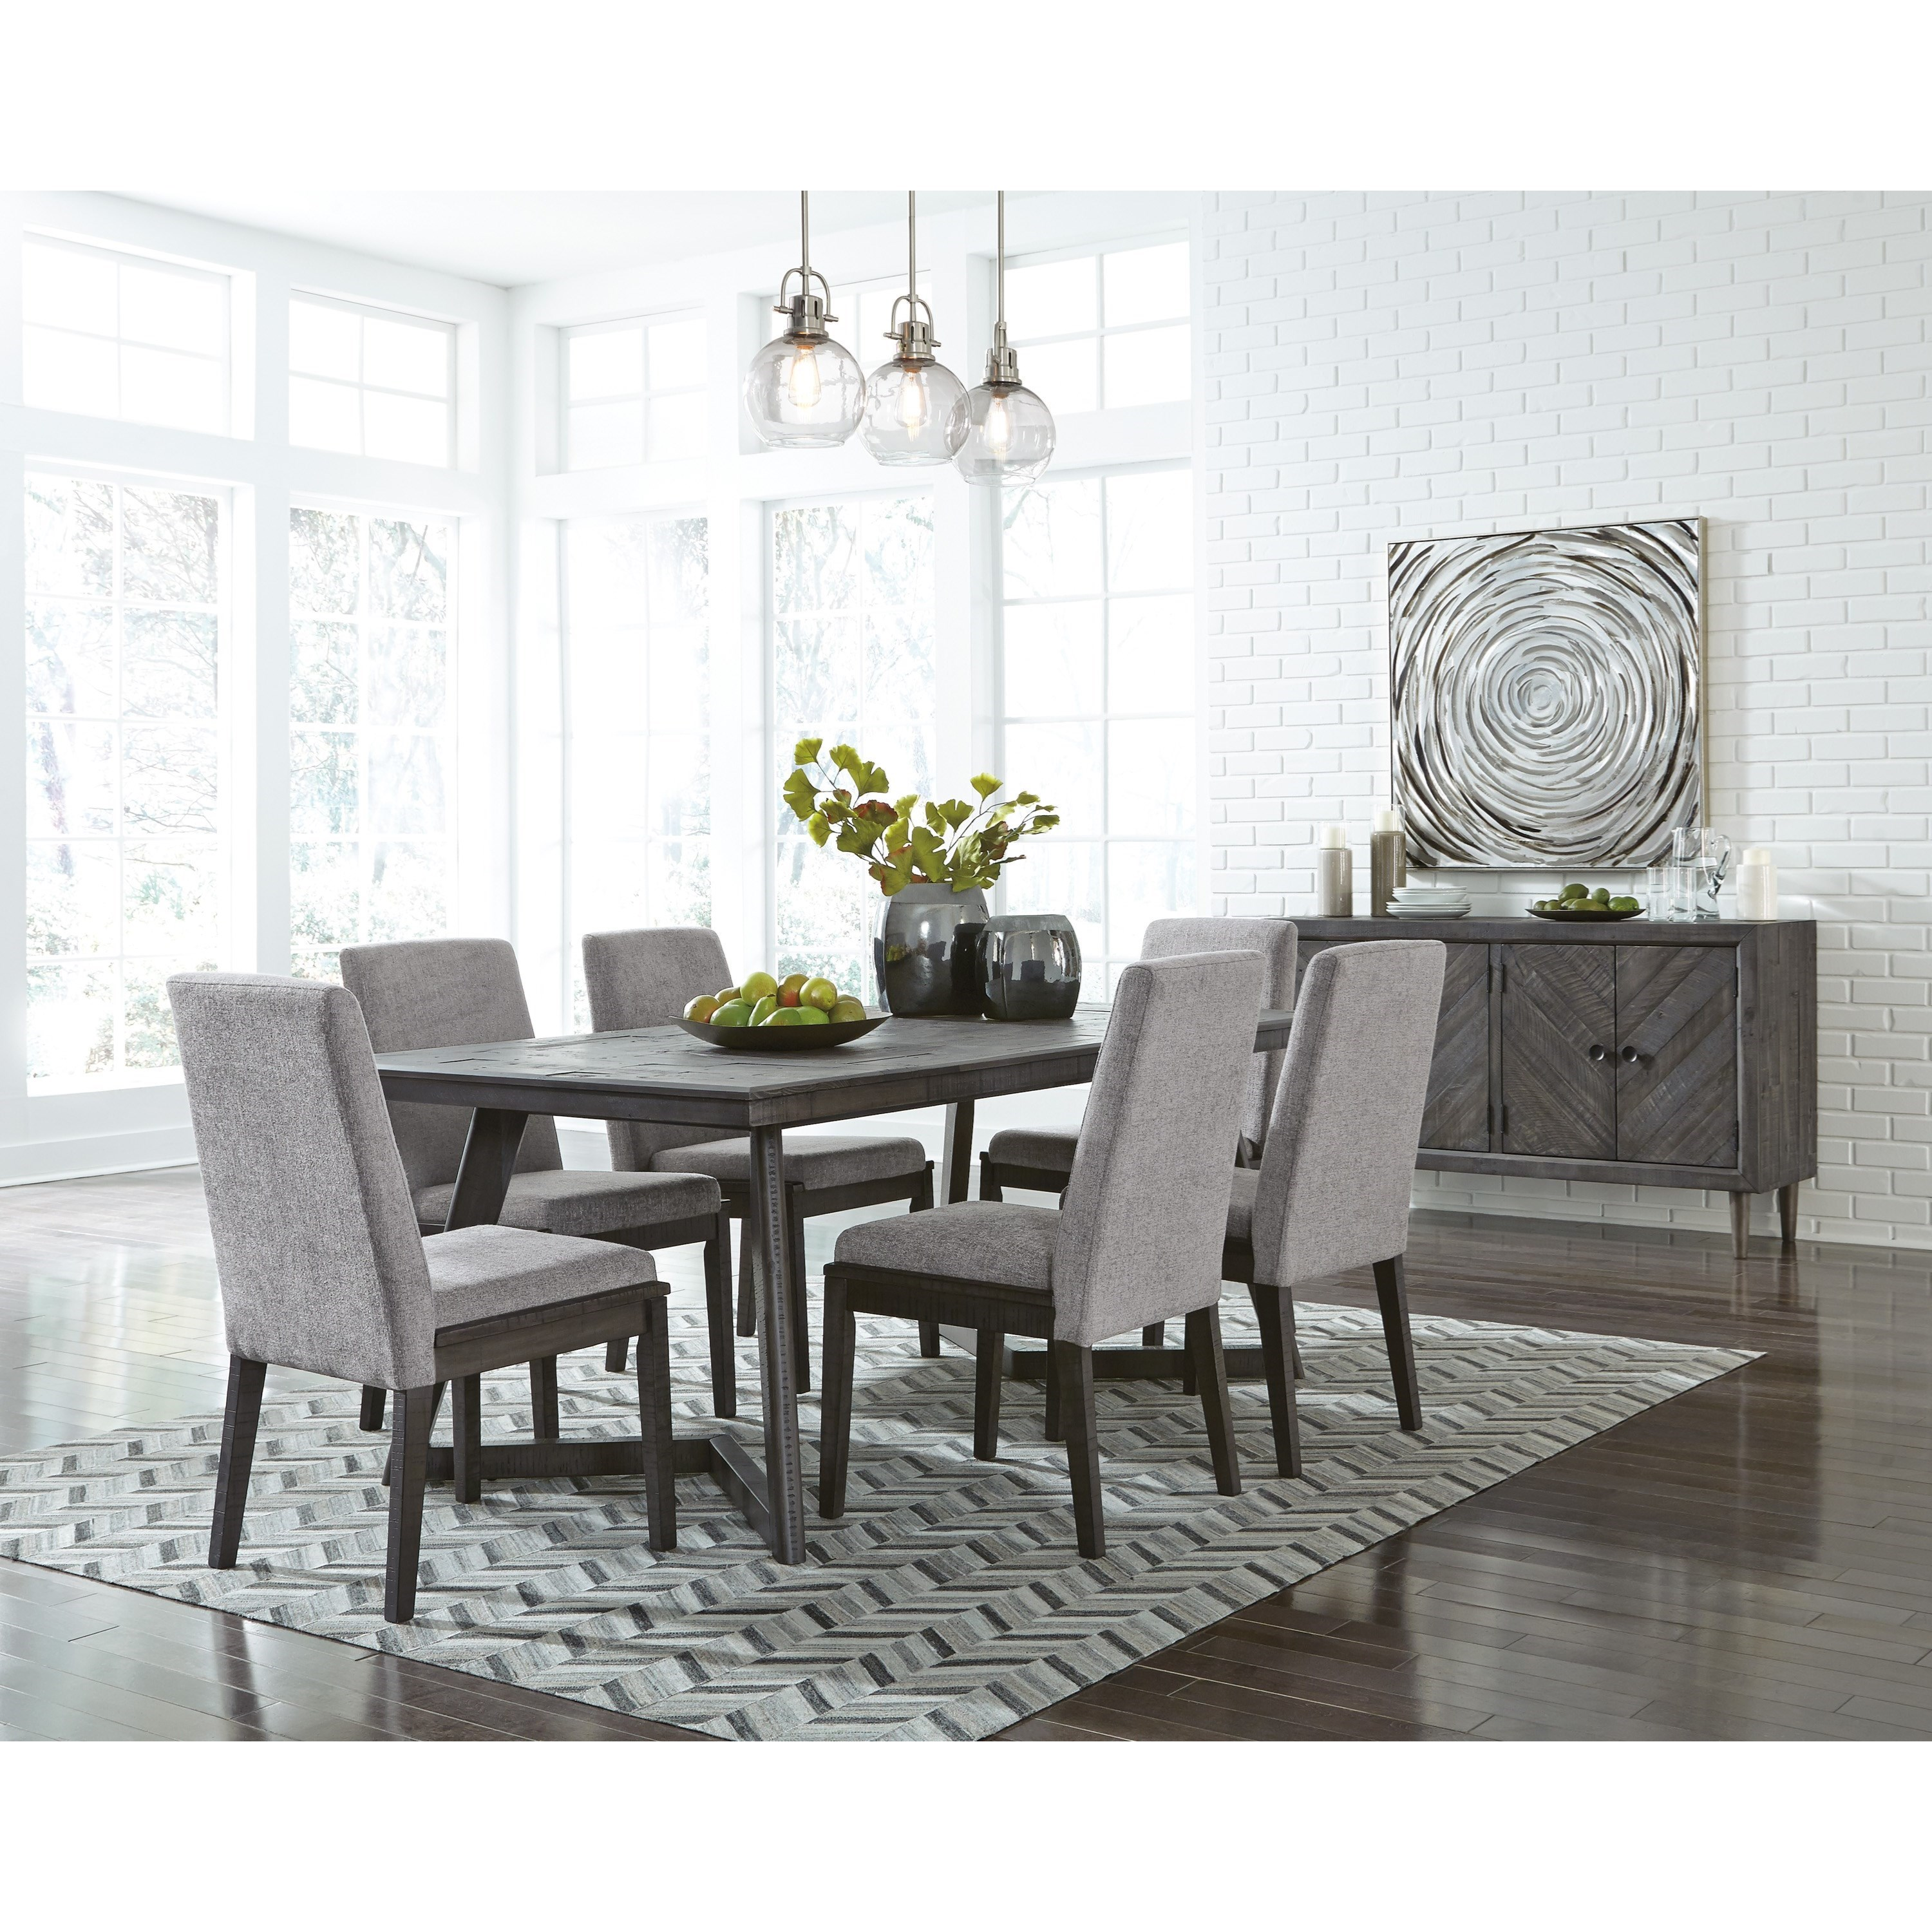 Signature Home Furnishings: Signature Design By Ashley Besteneer Contemporary Dining